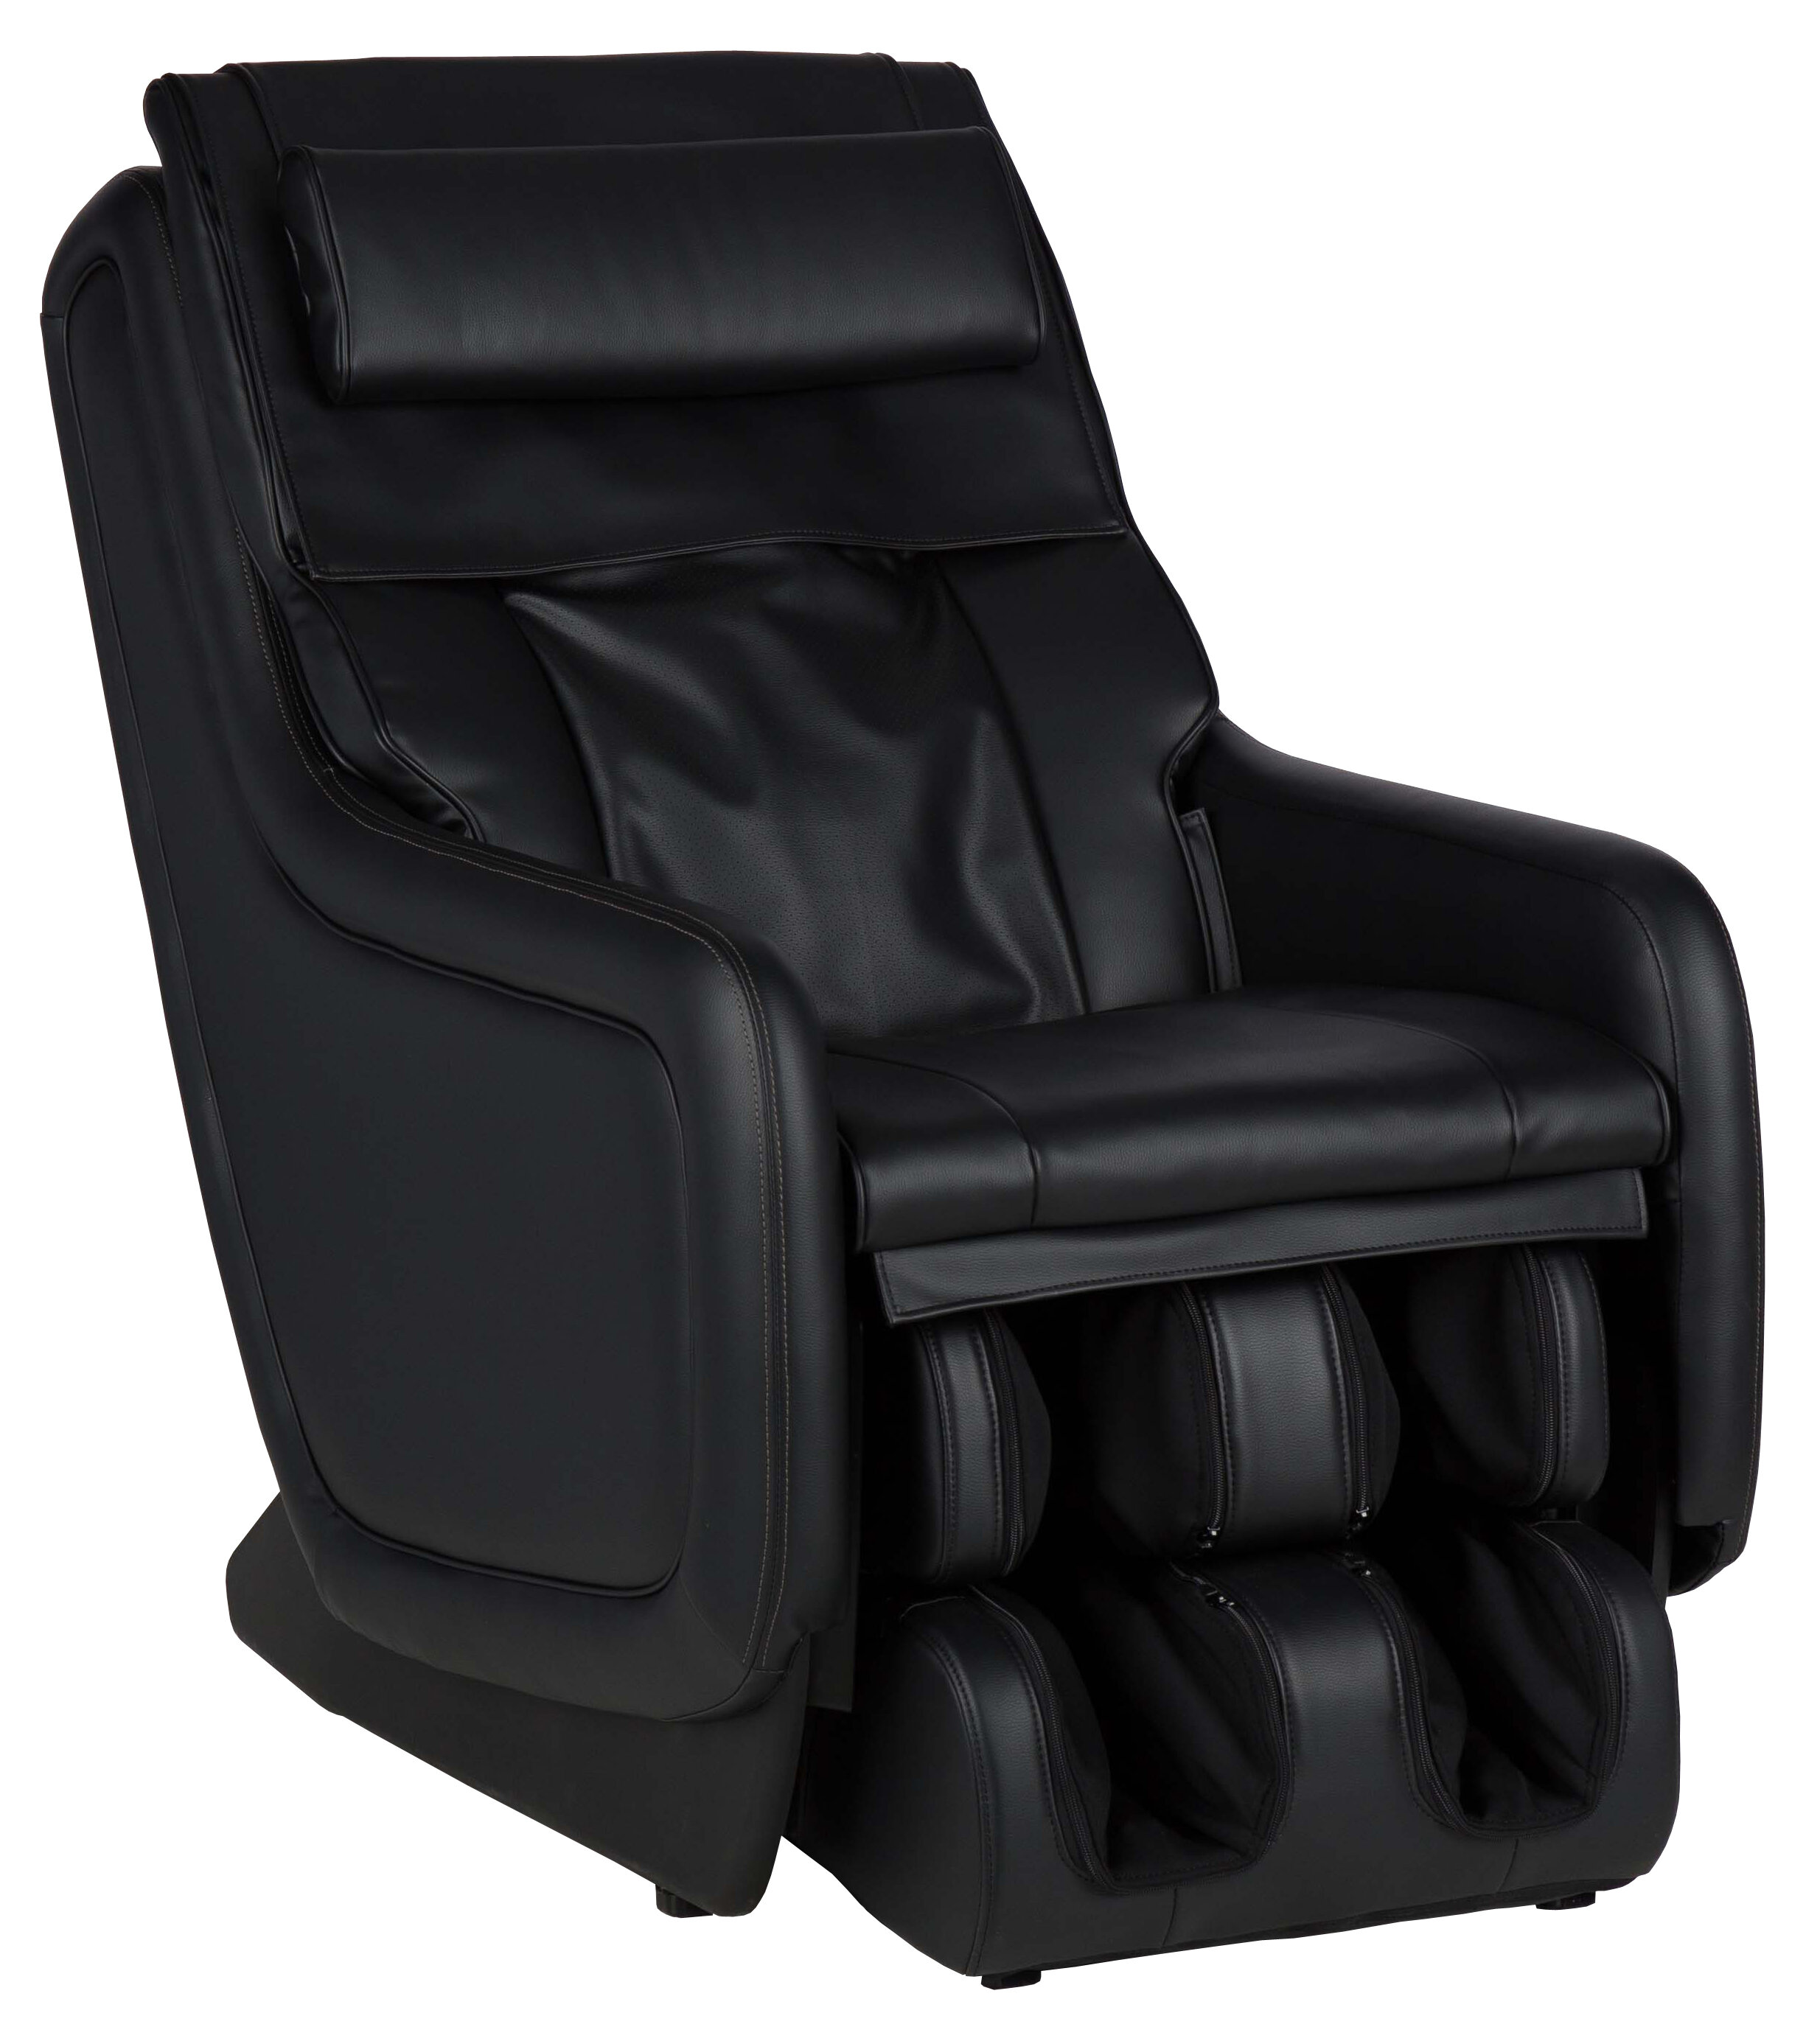 c68c9ce1631 Human Touch ZeroG® 5.0 SofHyde Heated Massage Chair   Reviews